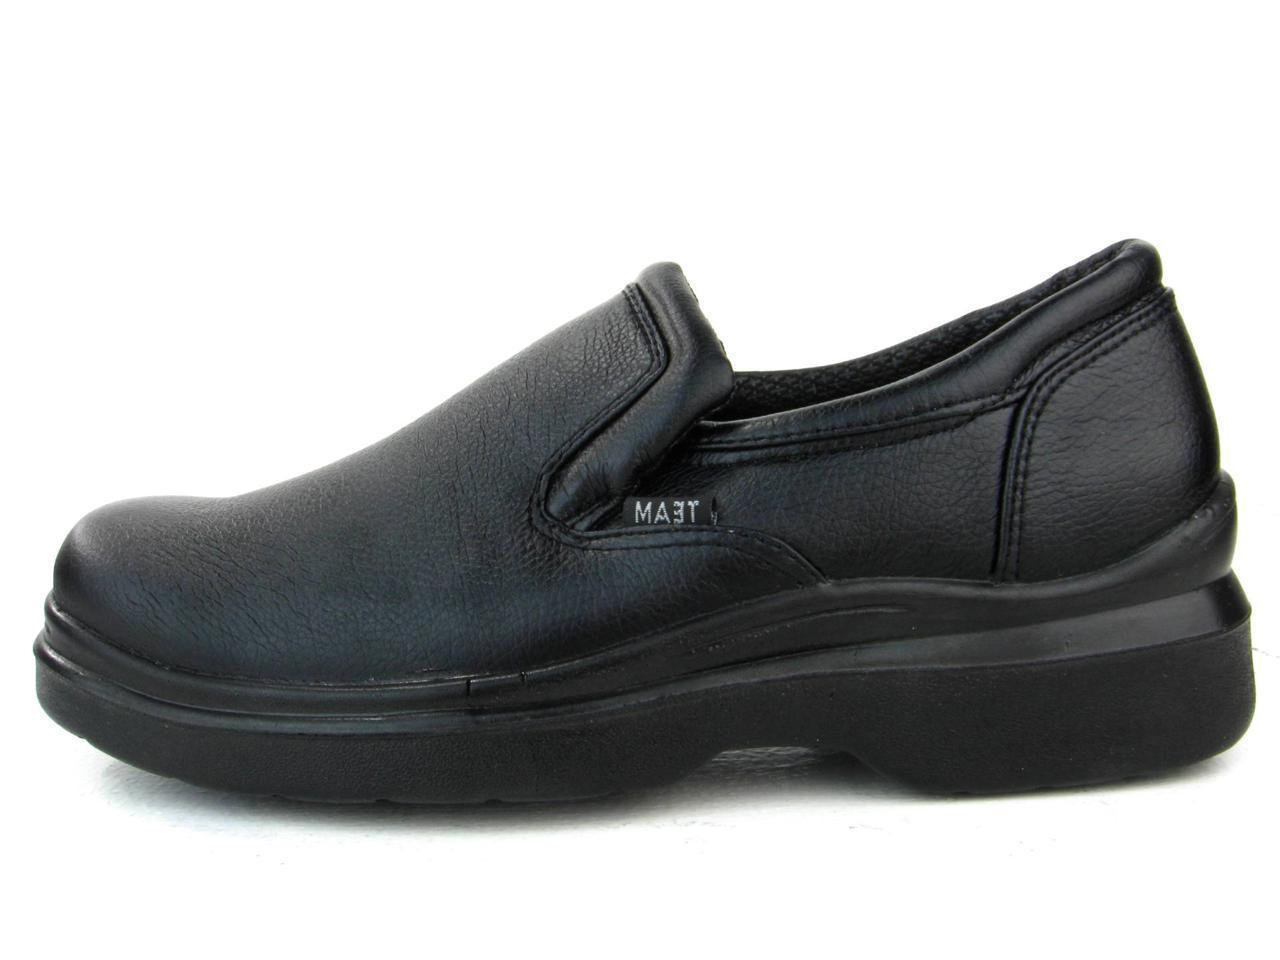 Men's Kitchen Shoes Slip-On Non-Slip